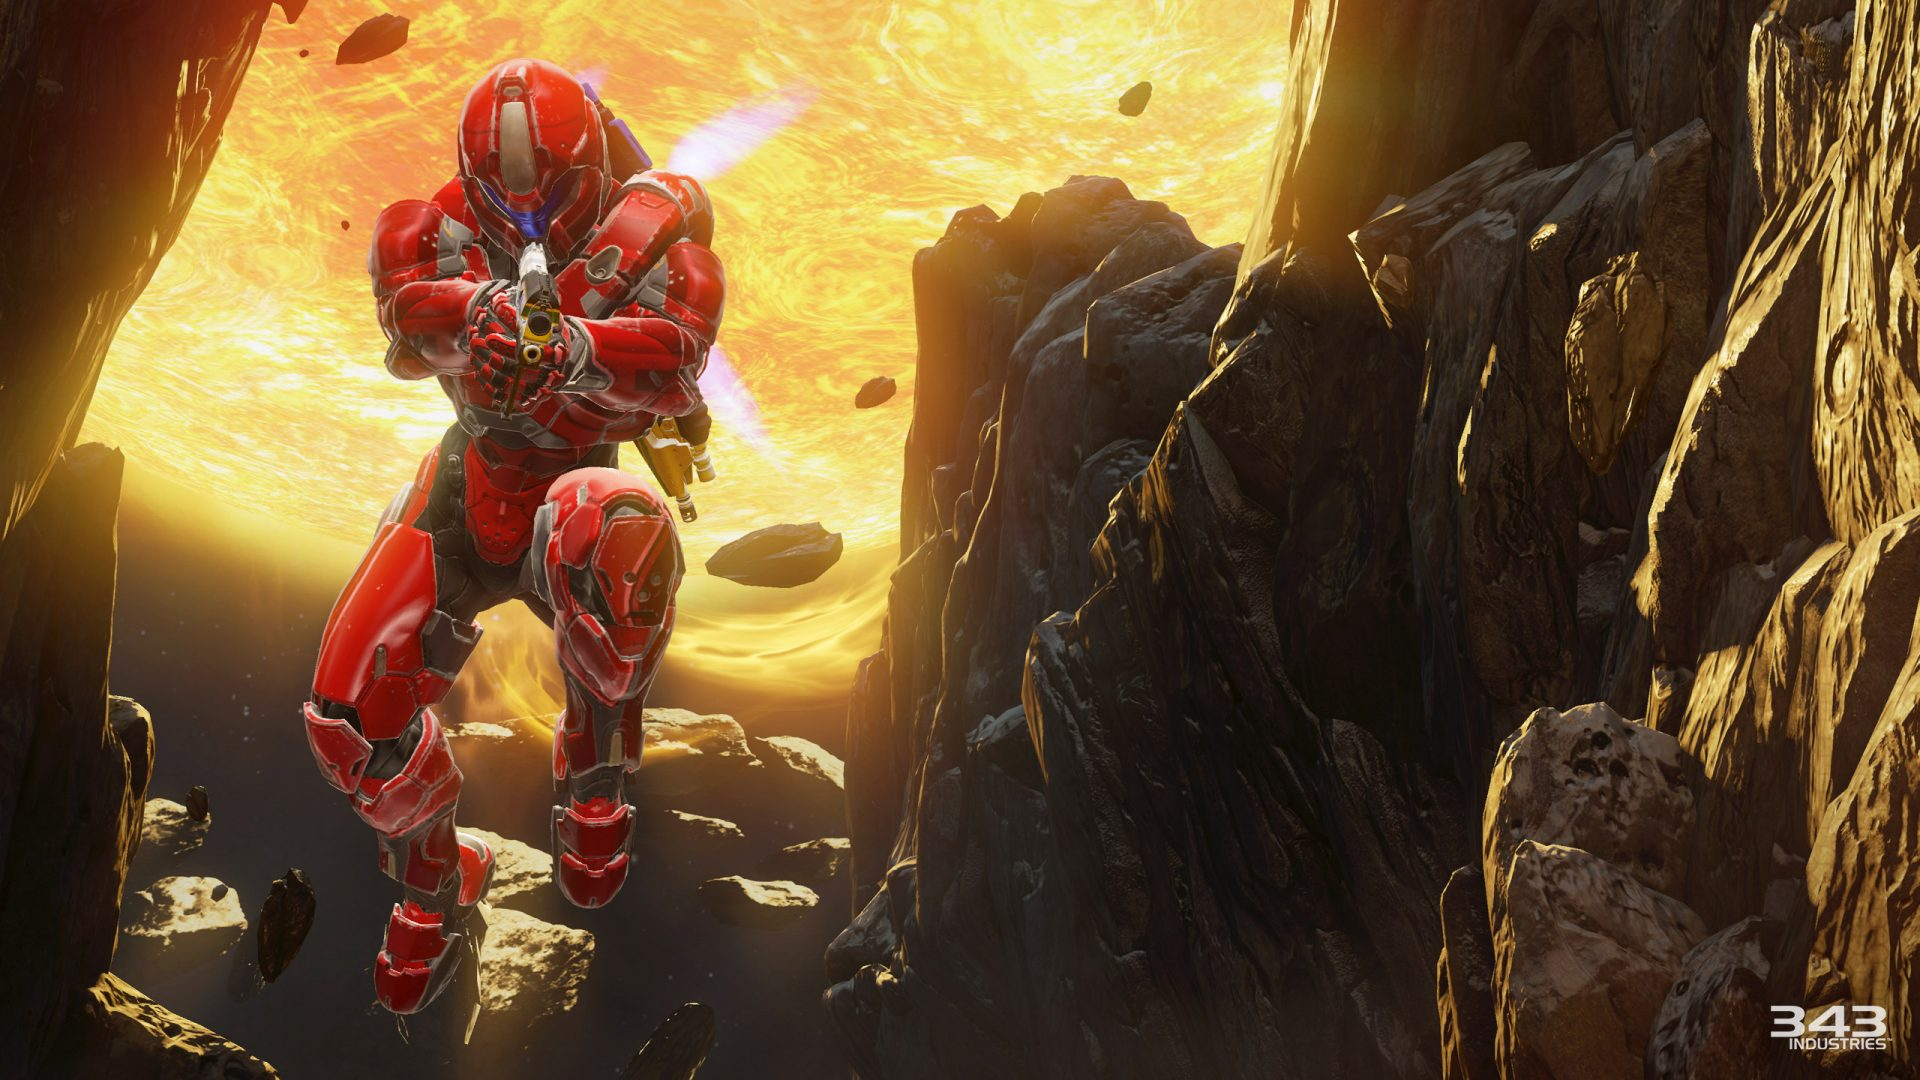 Get Ready For the Latest Round of the Halo Championship Series!